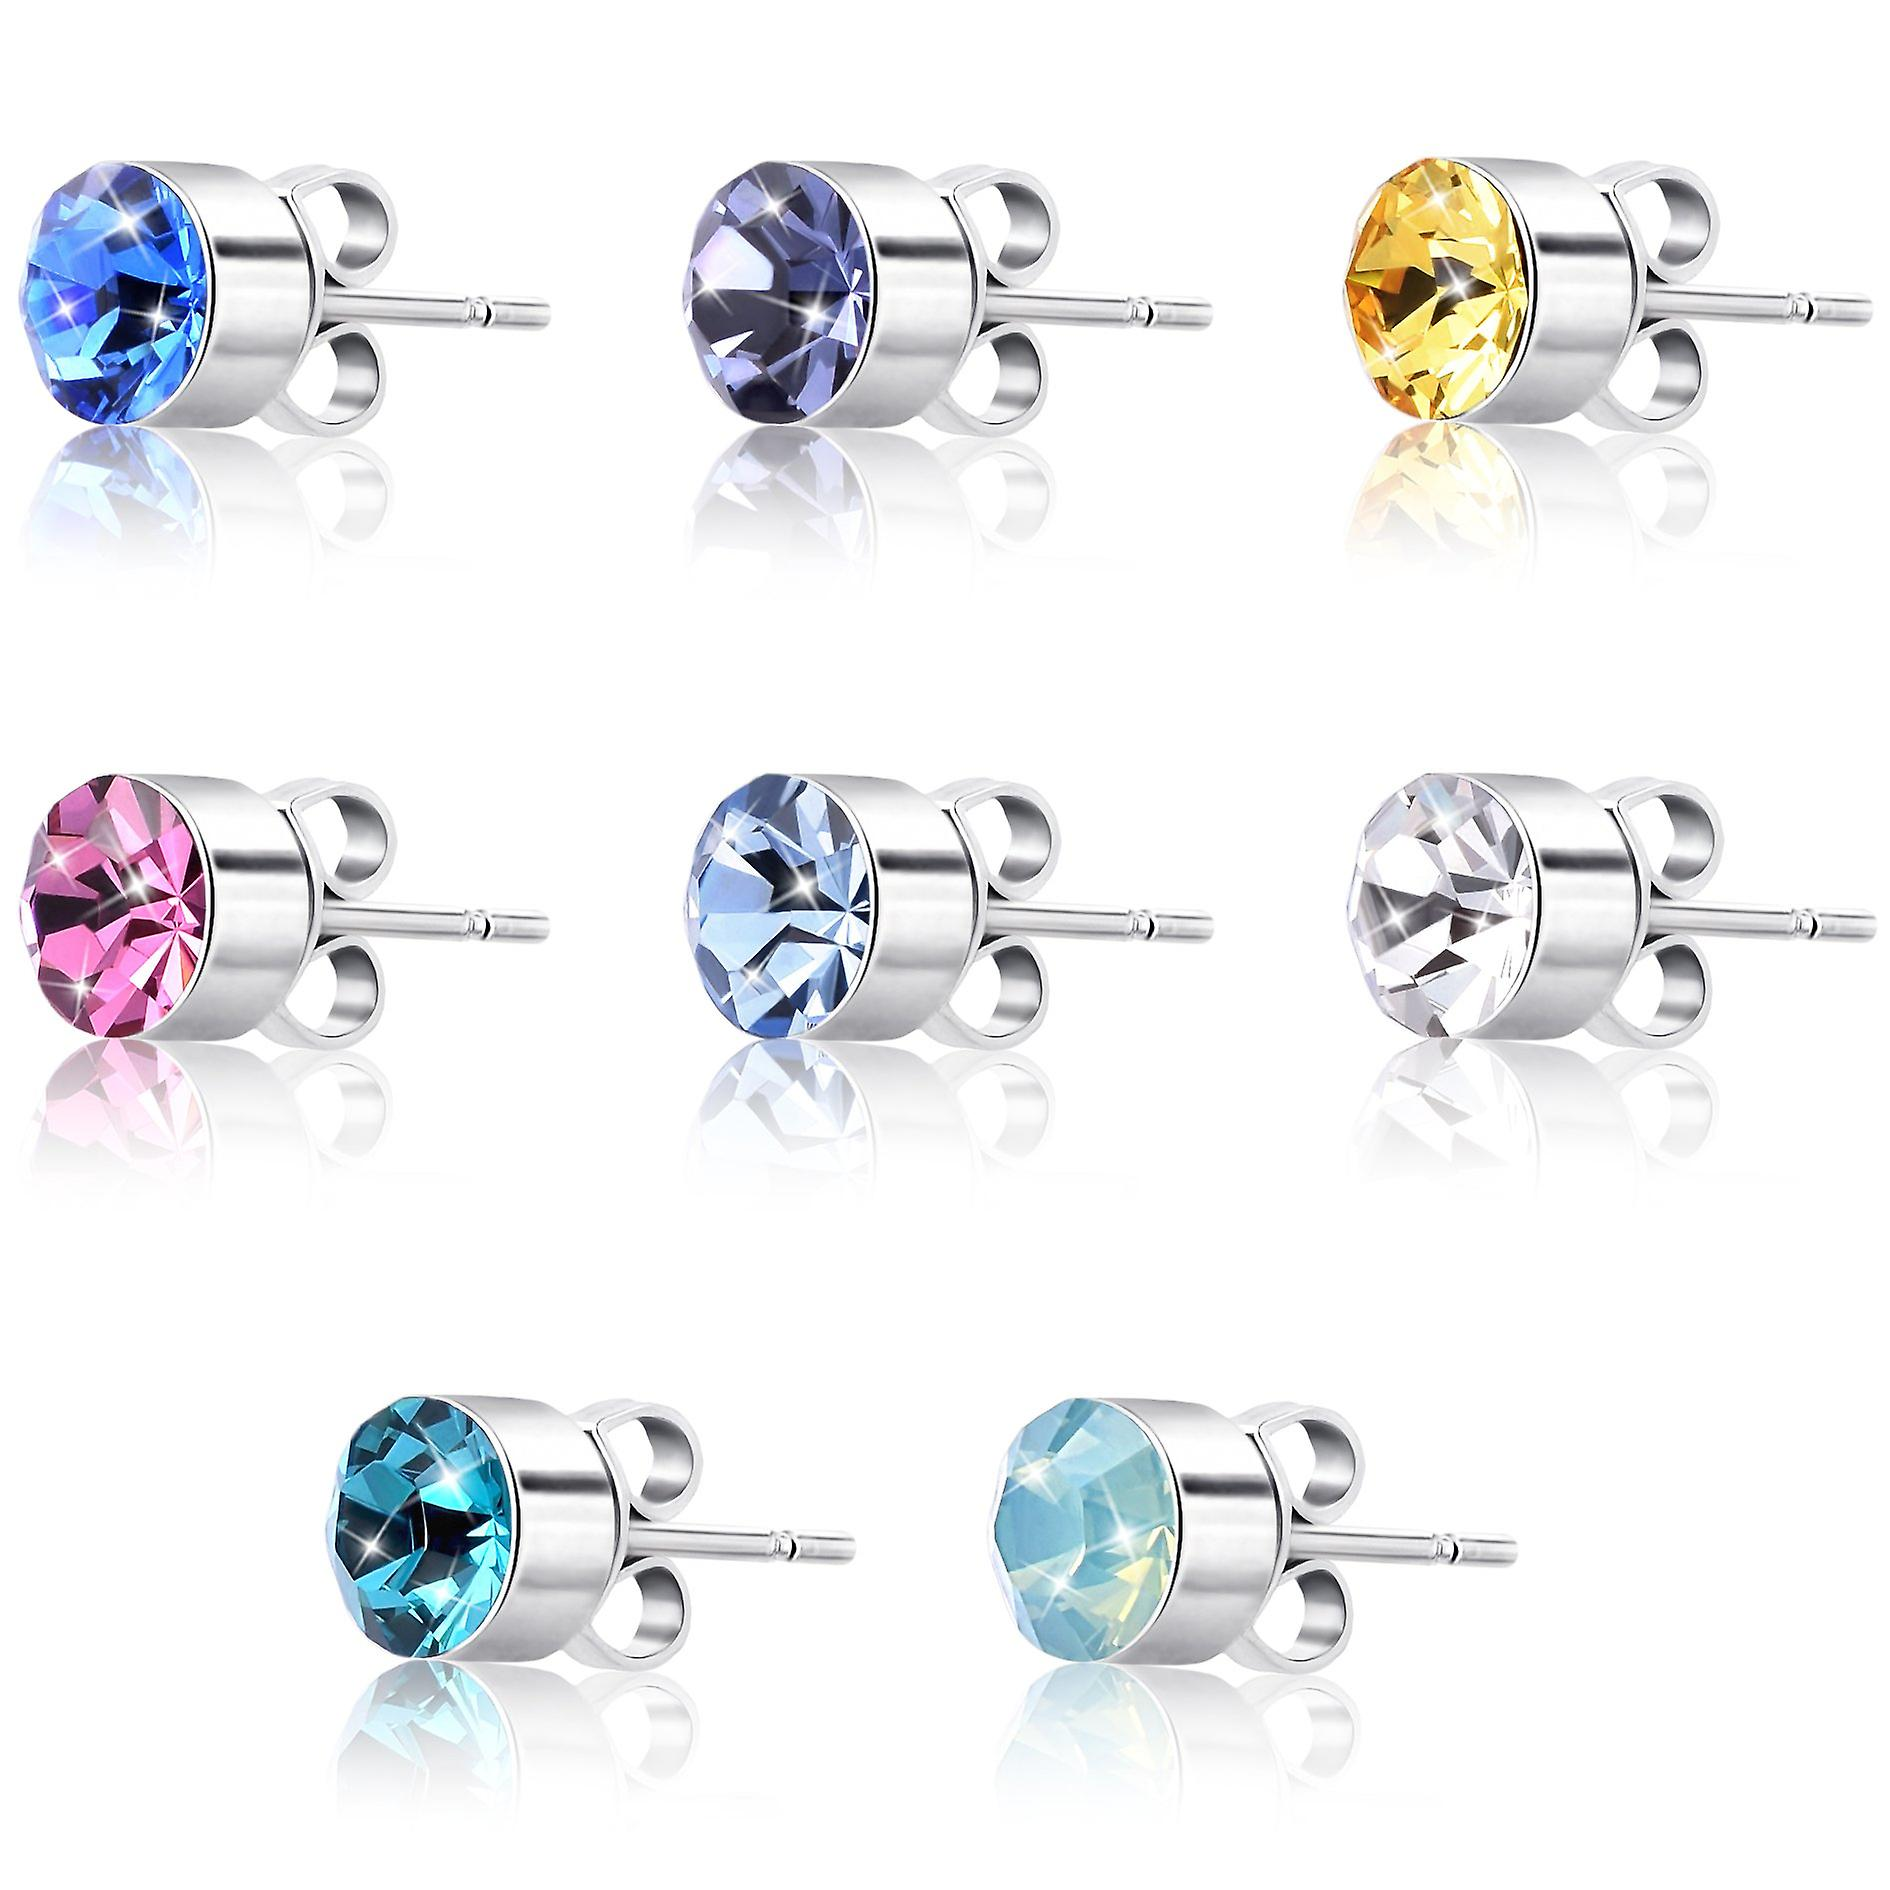 8 earrings set for women with swarovski crystal. rhodium plated. by 2splendid. gift box included. 8eqz016